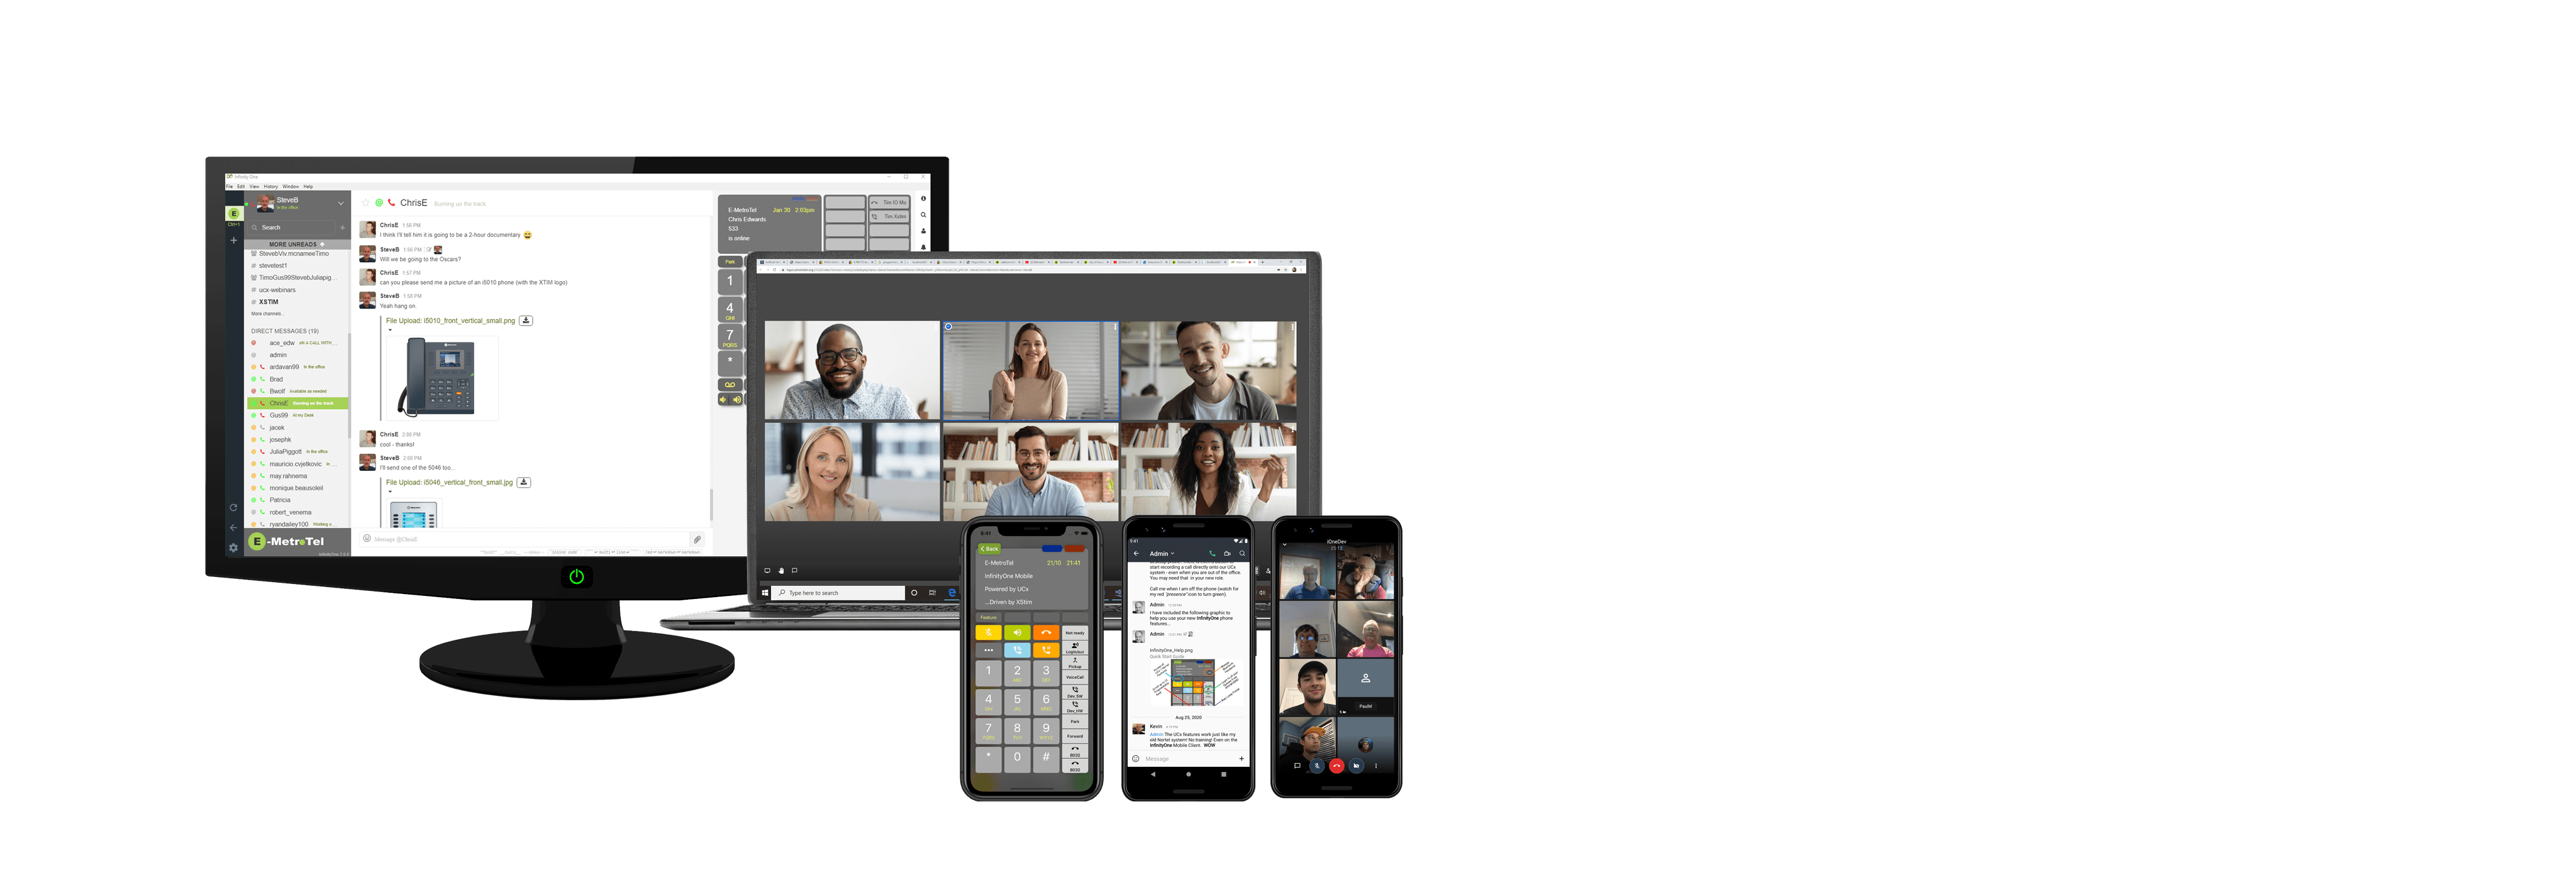 InfinityOne Mobility, Collaboration, Work From Home image